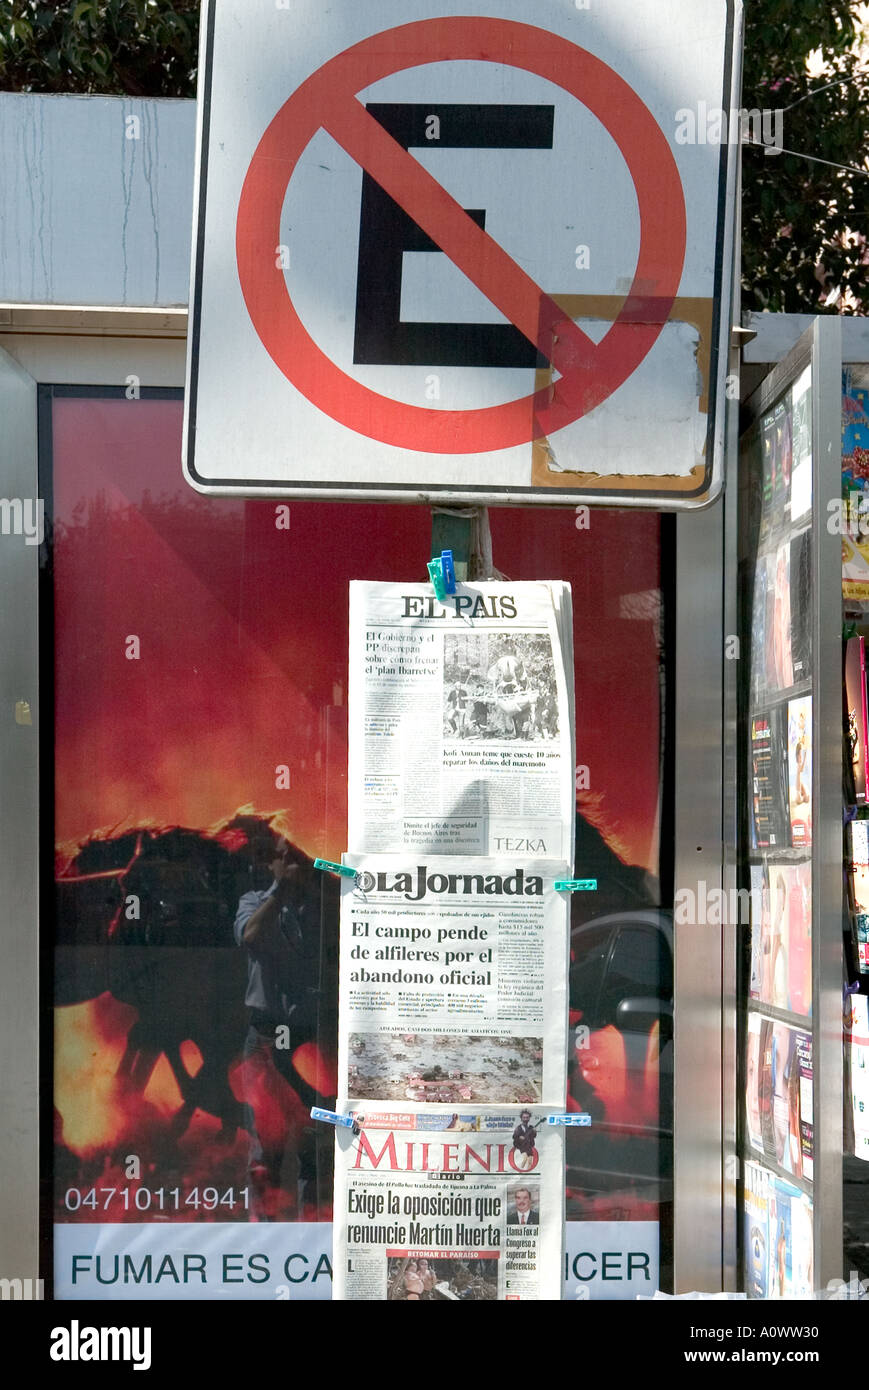 No parking sign and newspapers El Pais La Jornada and Milenio pegged to a post in Mexico City - Stock Image